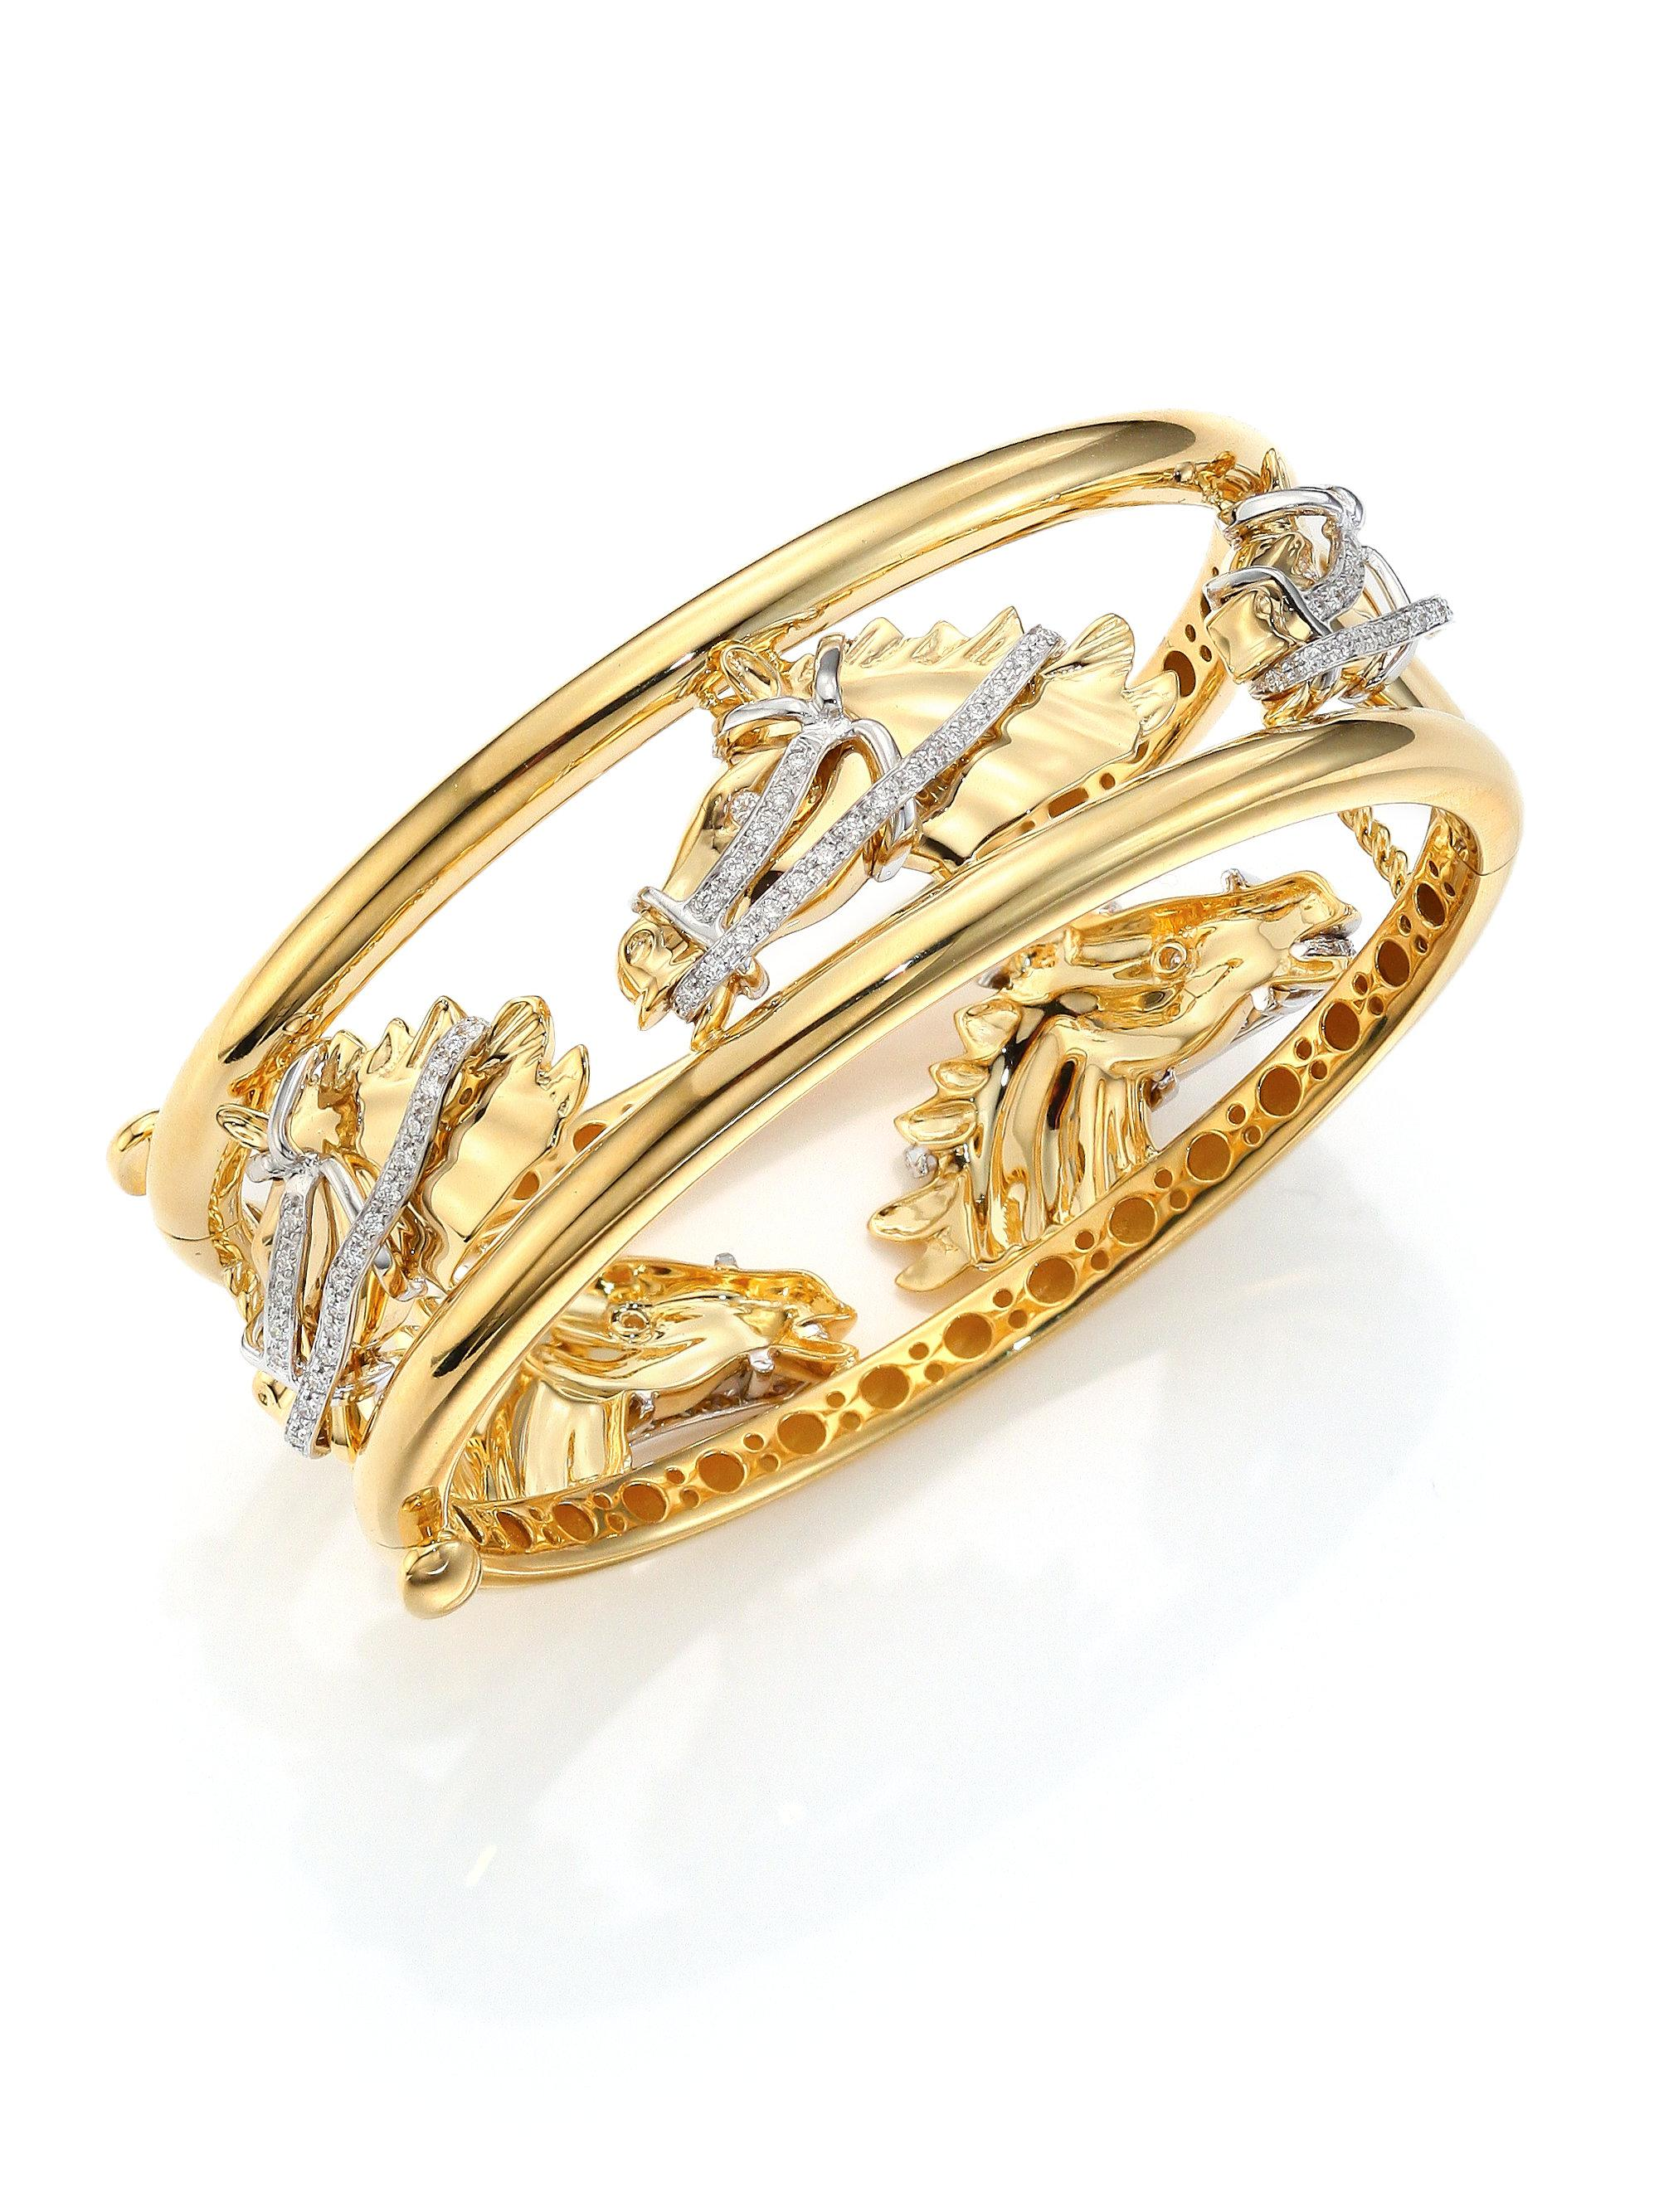 jeweller jewellery chand shop bangles kolkata manik gold